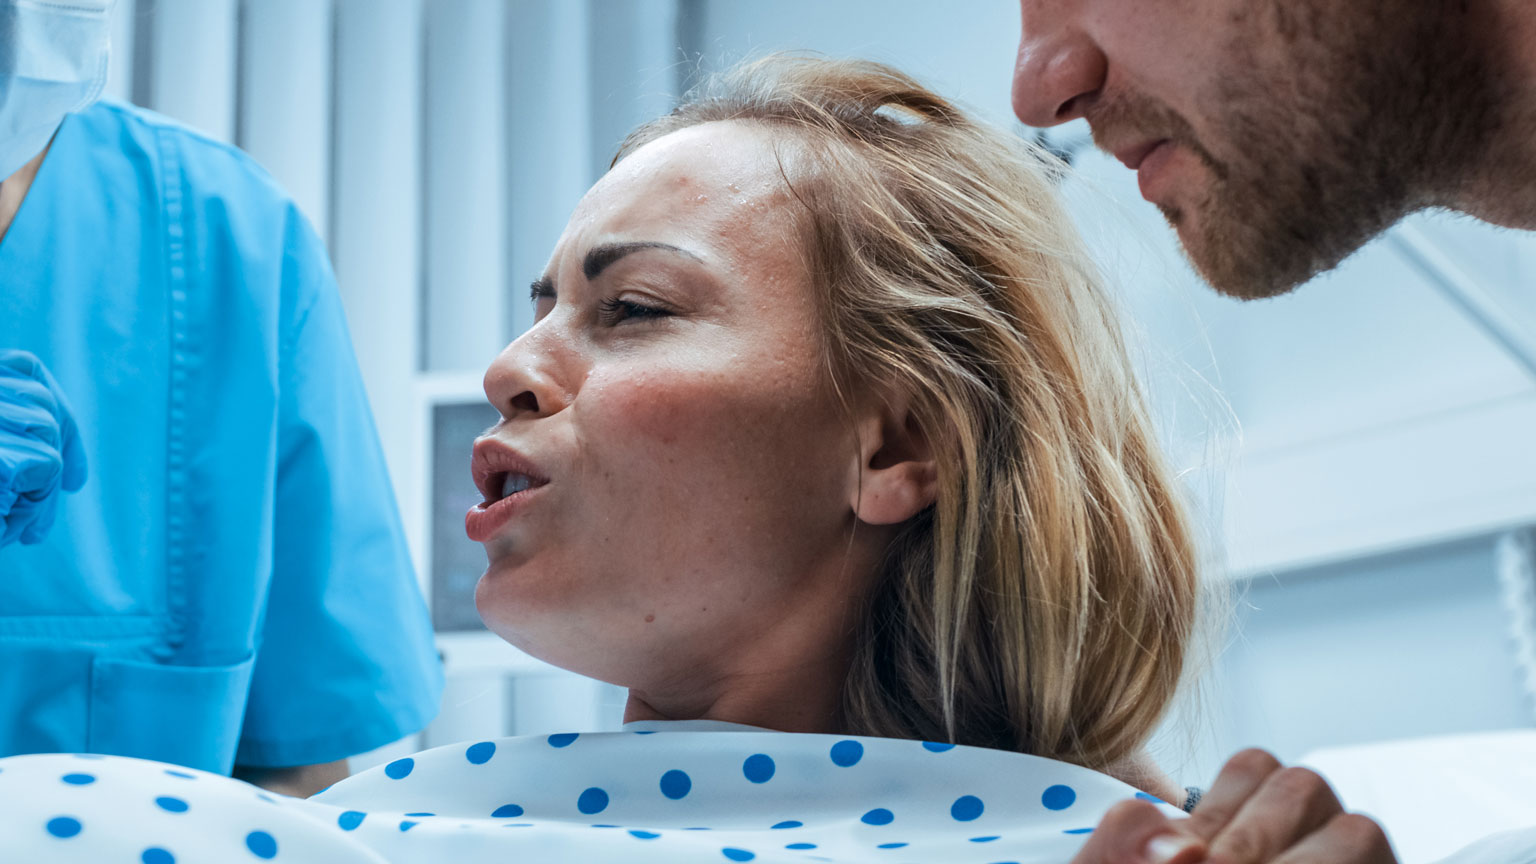 Woman during labor